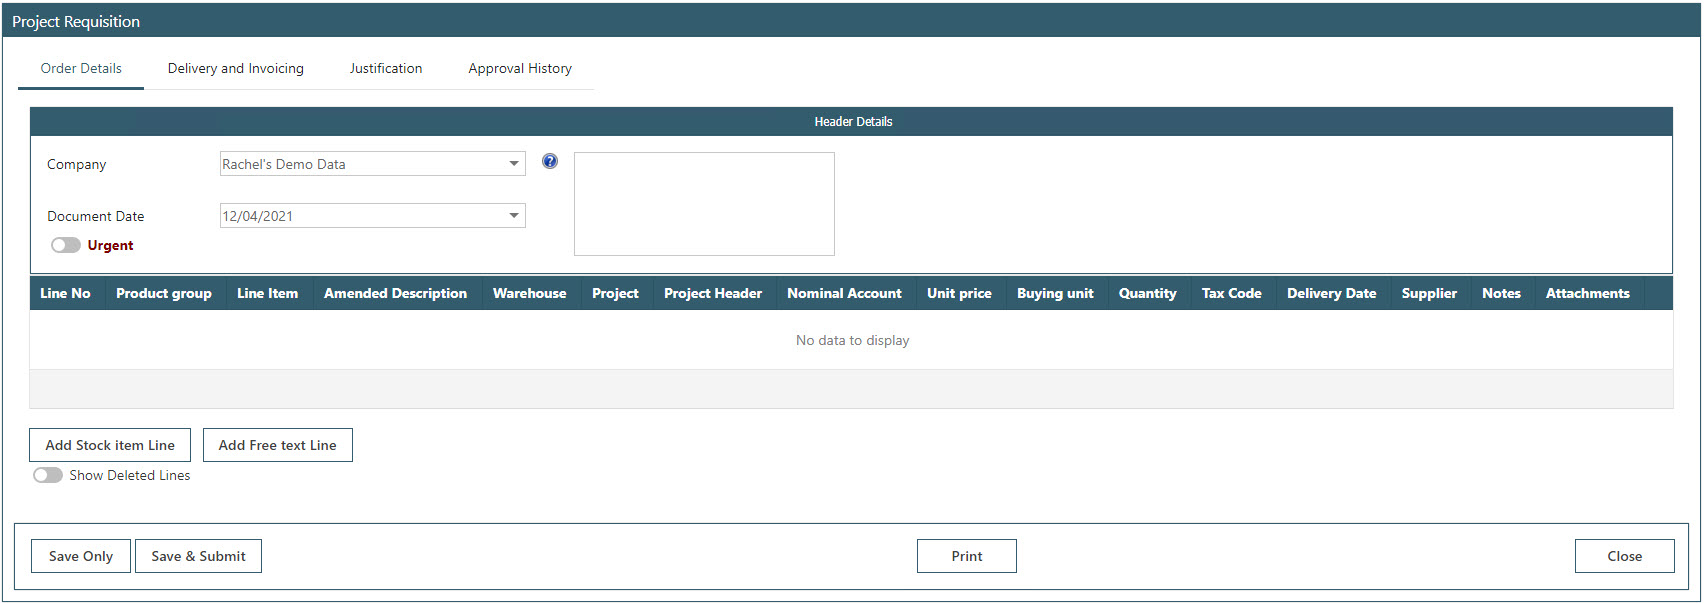 Sicon WAP Purchase Requisitions Help and User Guide - Requisition HUG Section 23.5 Image 1